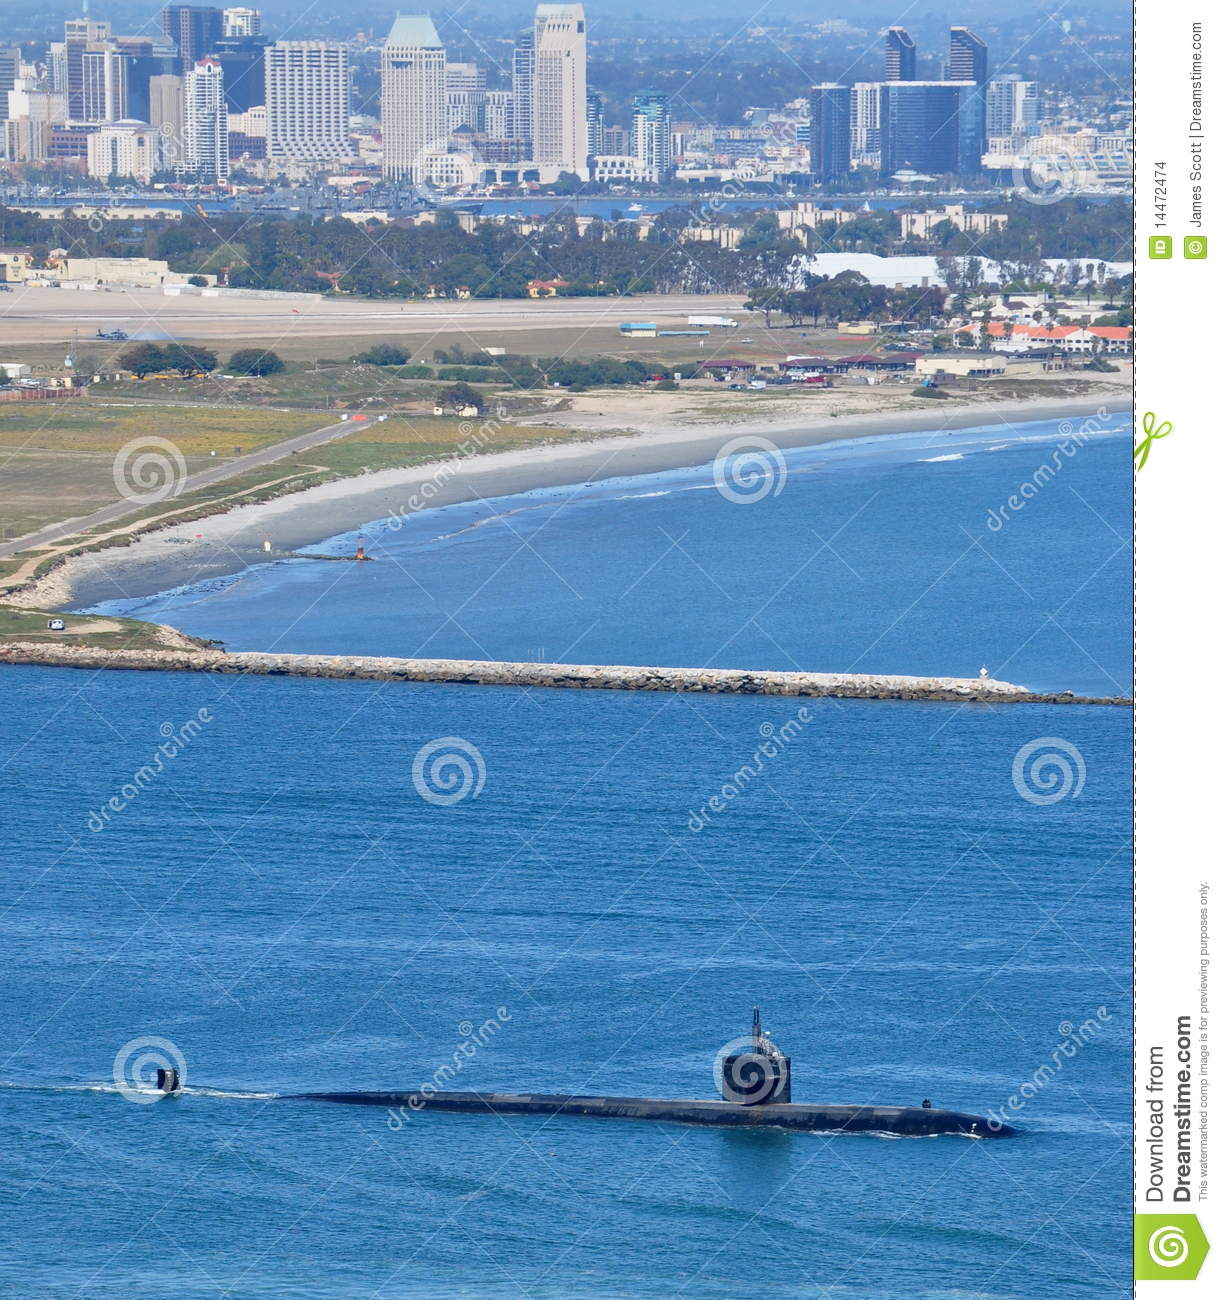 SSN Los Angeles Class Attack Submarine Stock Photo - Image